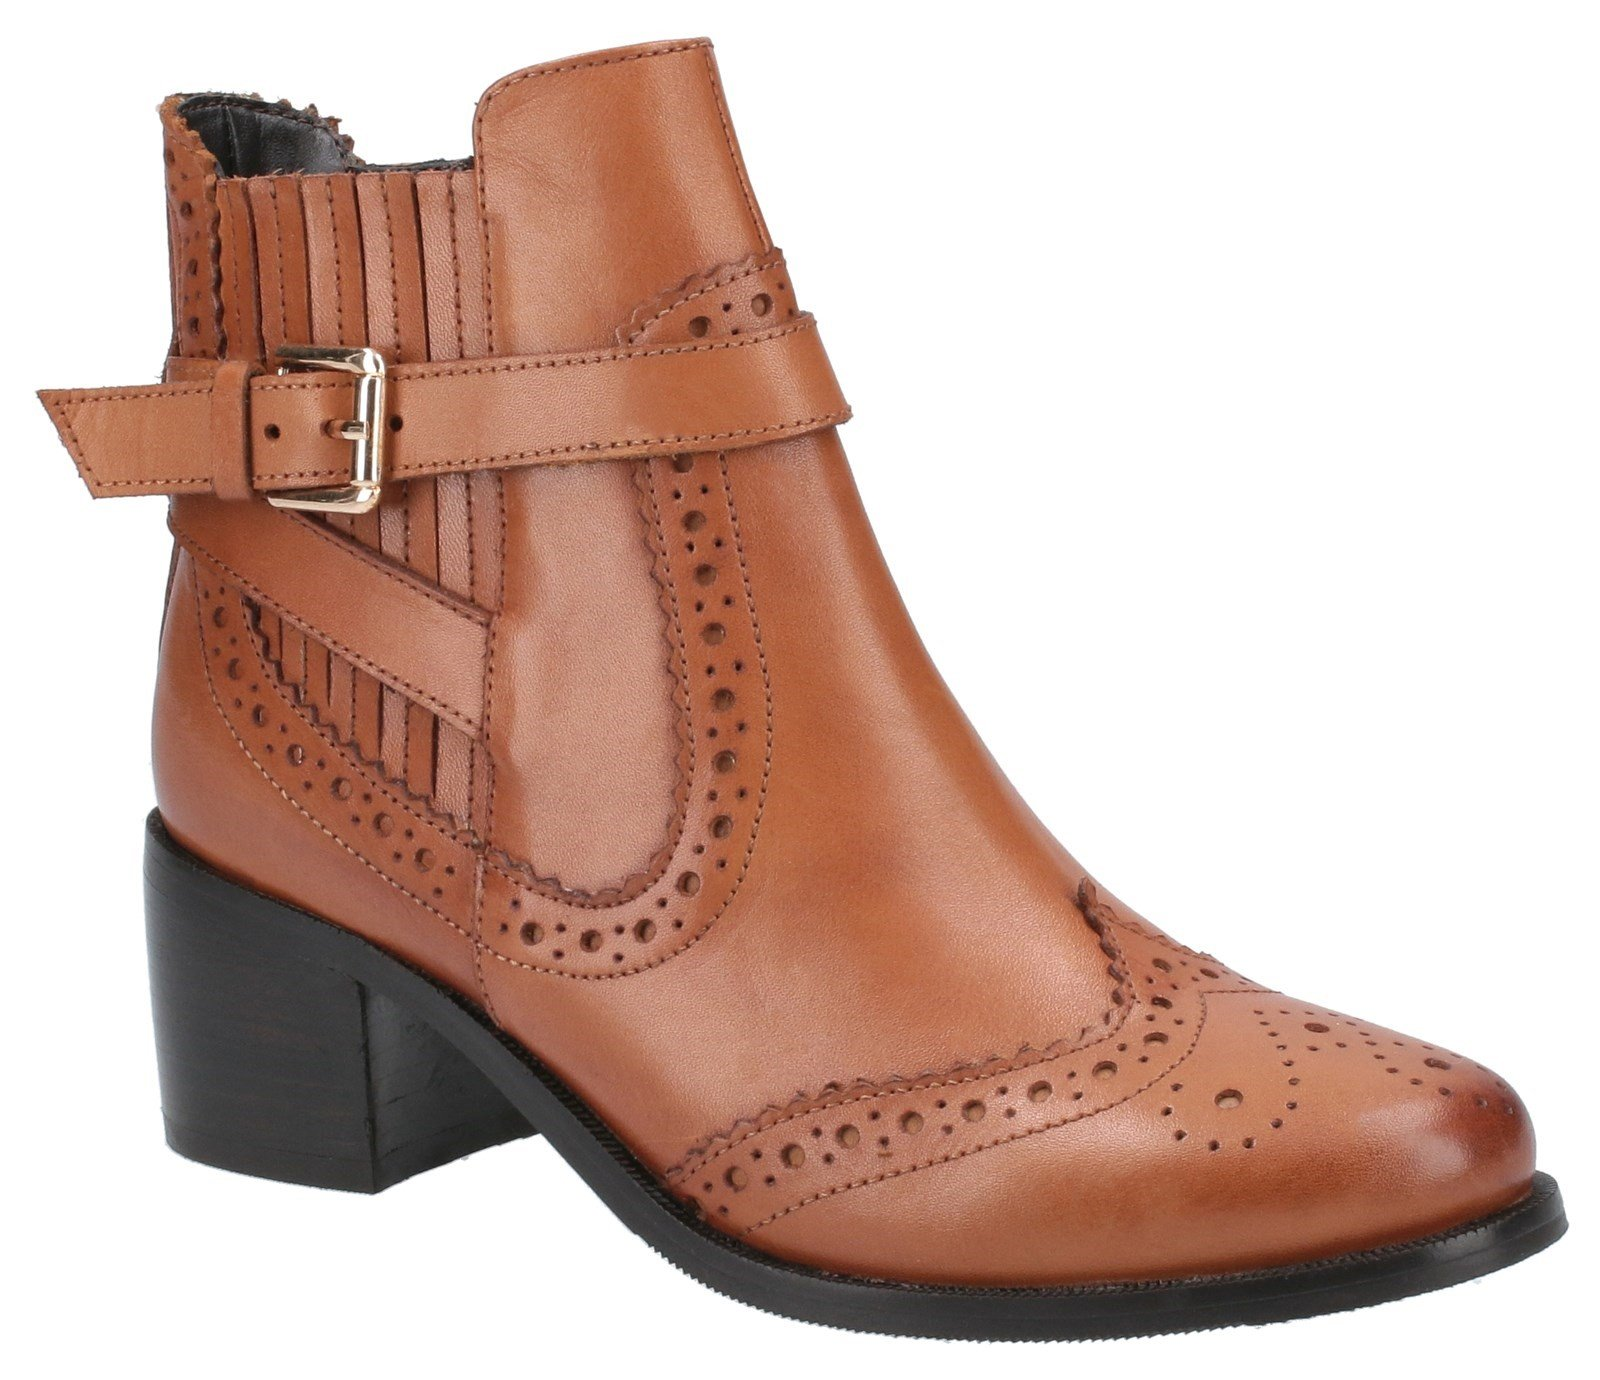 Hush Puppies Women's Rayleigh Ankle Boots Various Colours 31224 - Tan 8